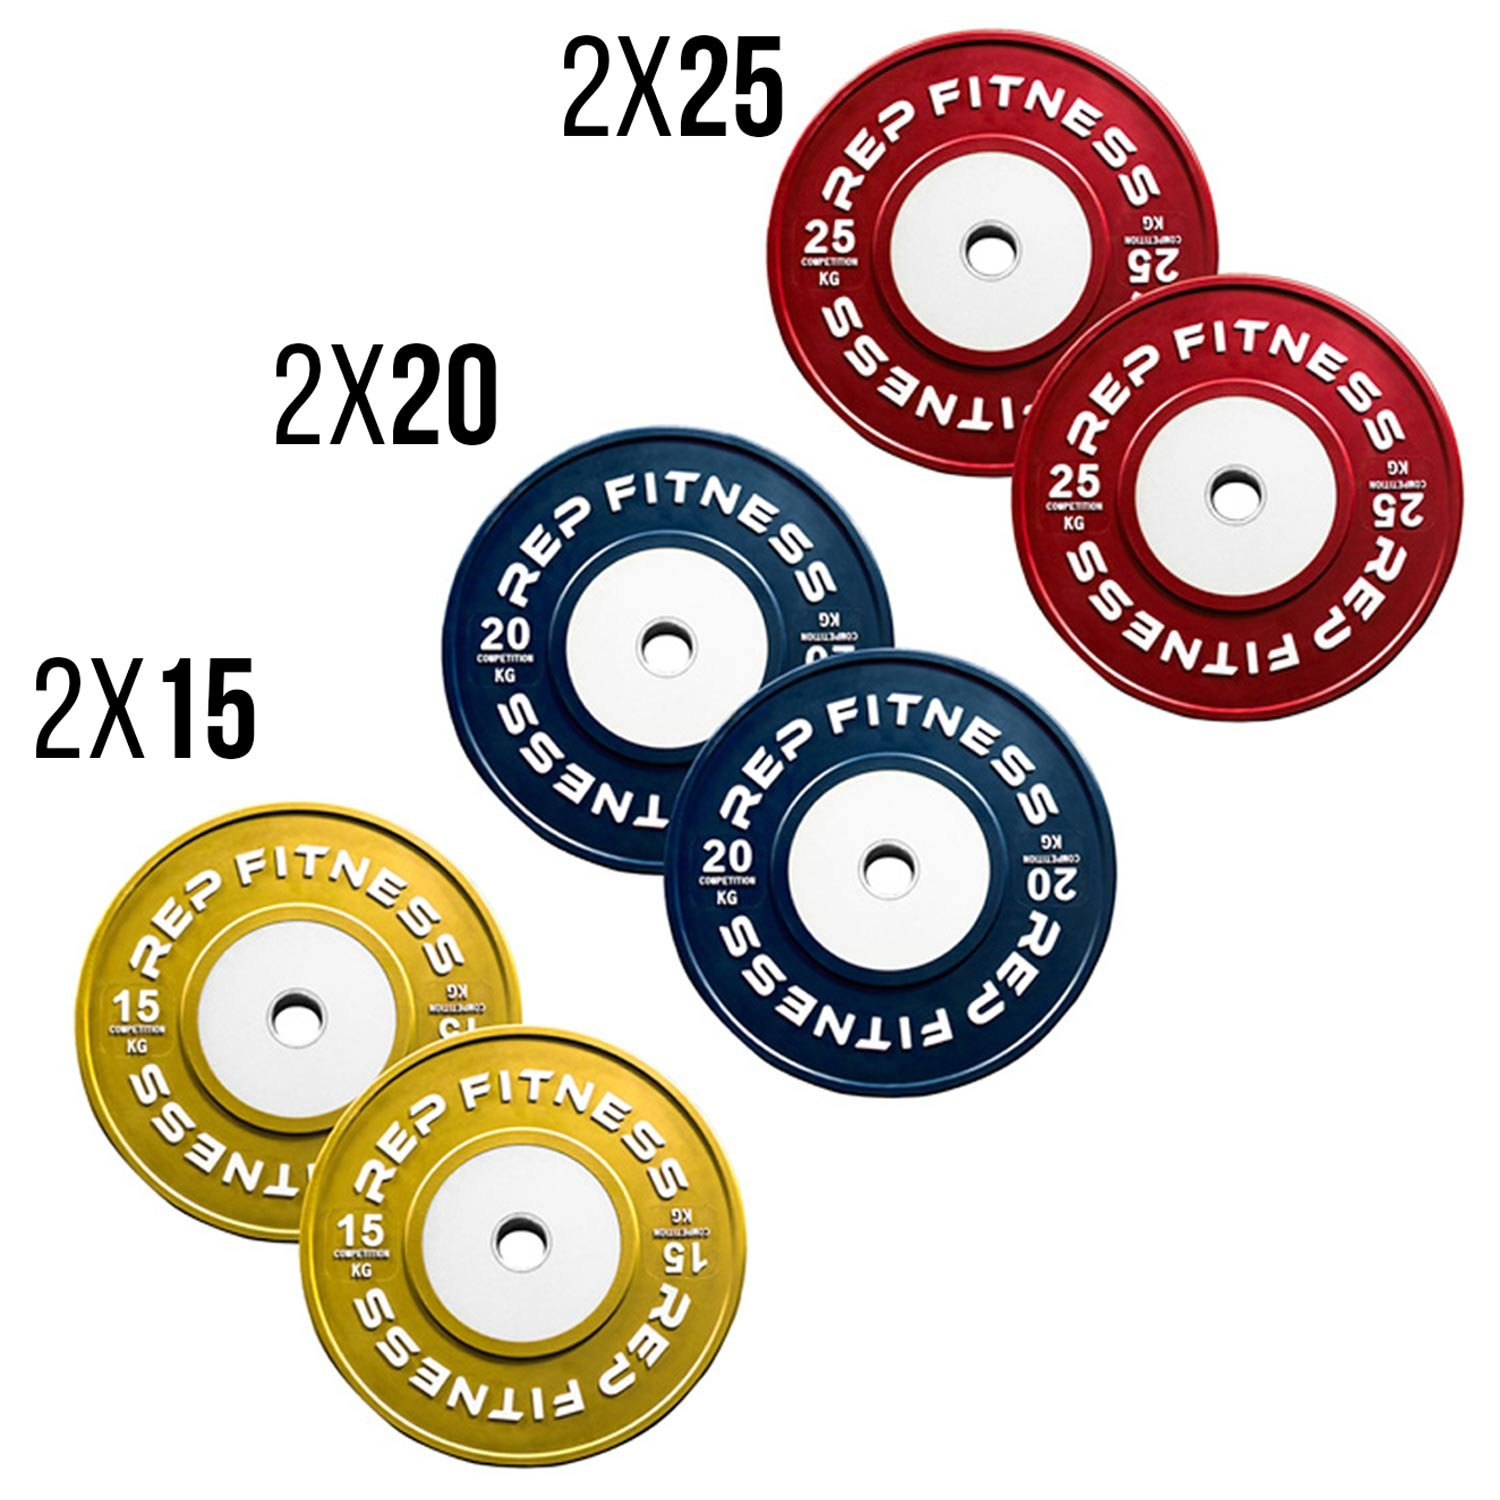 Rep kg Competition Bumper Plates for Olympic Weightlifting, 120kg Set